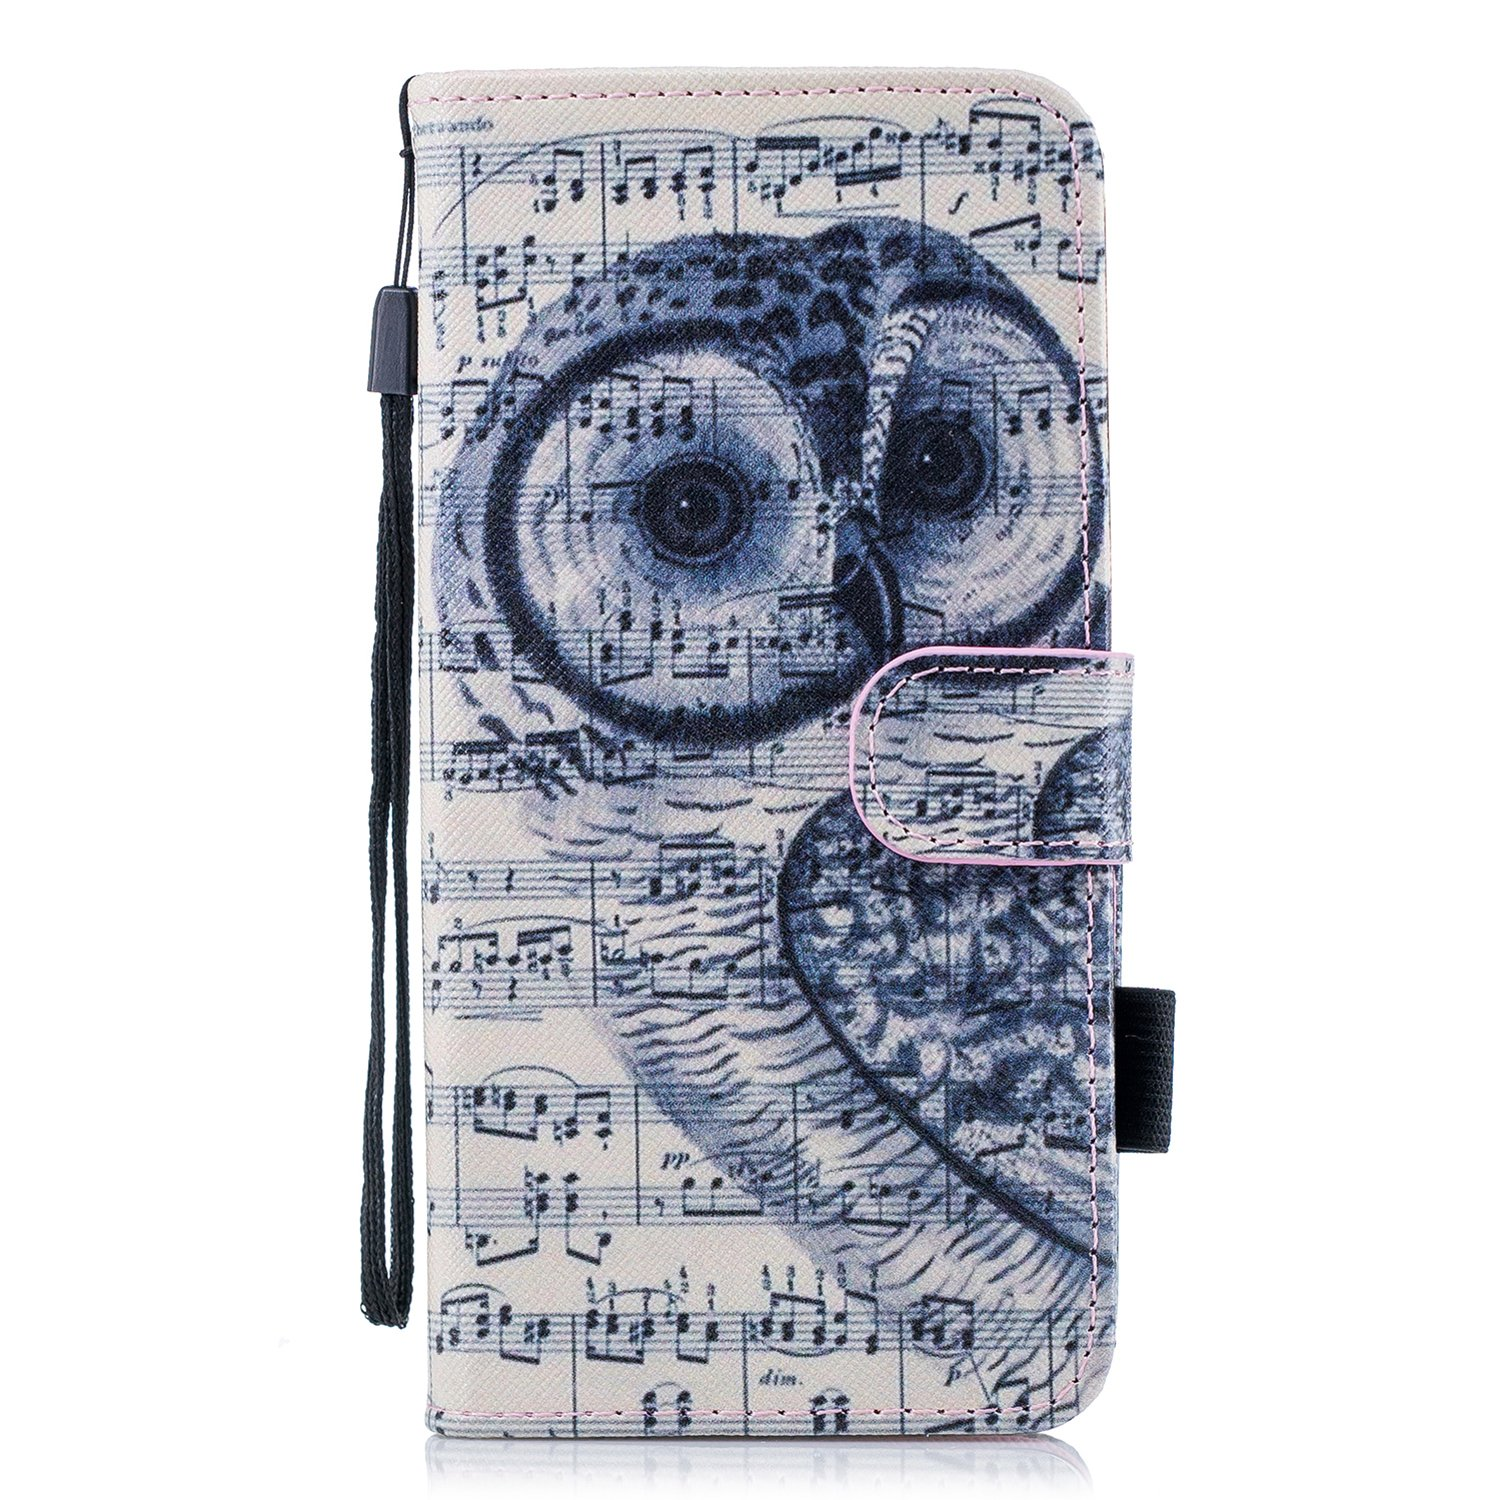 outlet Galaxy S9+ Case, For [S9 Plus] MerKuyom [Wrist Strap] [Kickstand] Premium PU Leather Wallet Pouch Flip Cover Case For Samsung Galaxy S9 Plus / S9+, W/ Stylus (Owl Music Sheet)